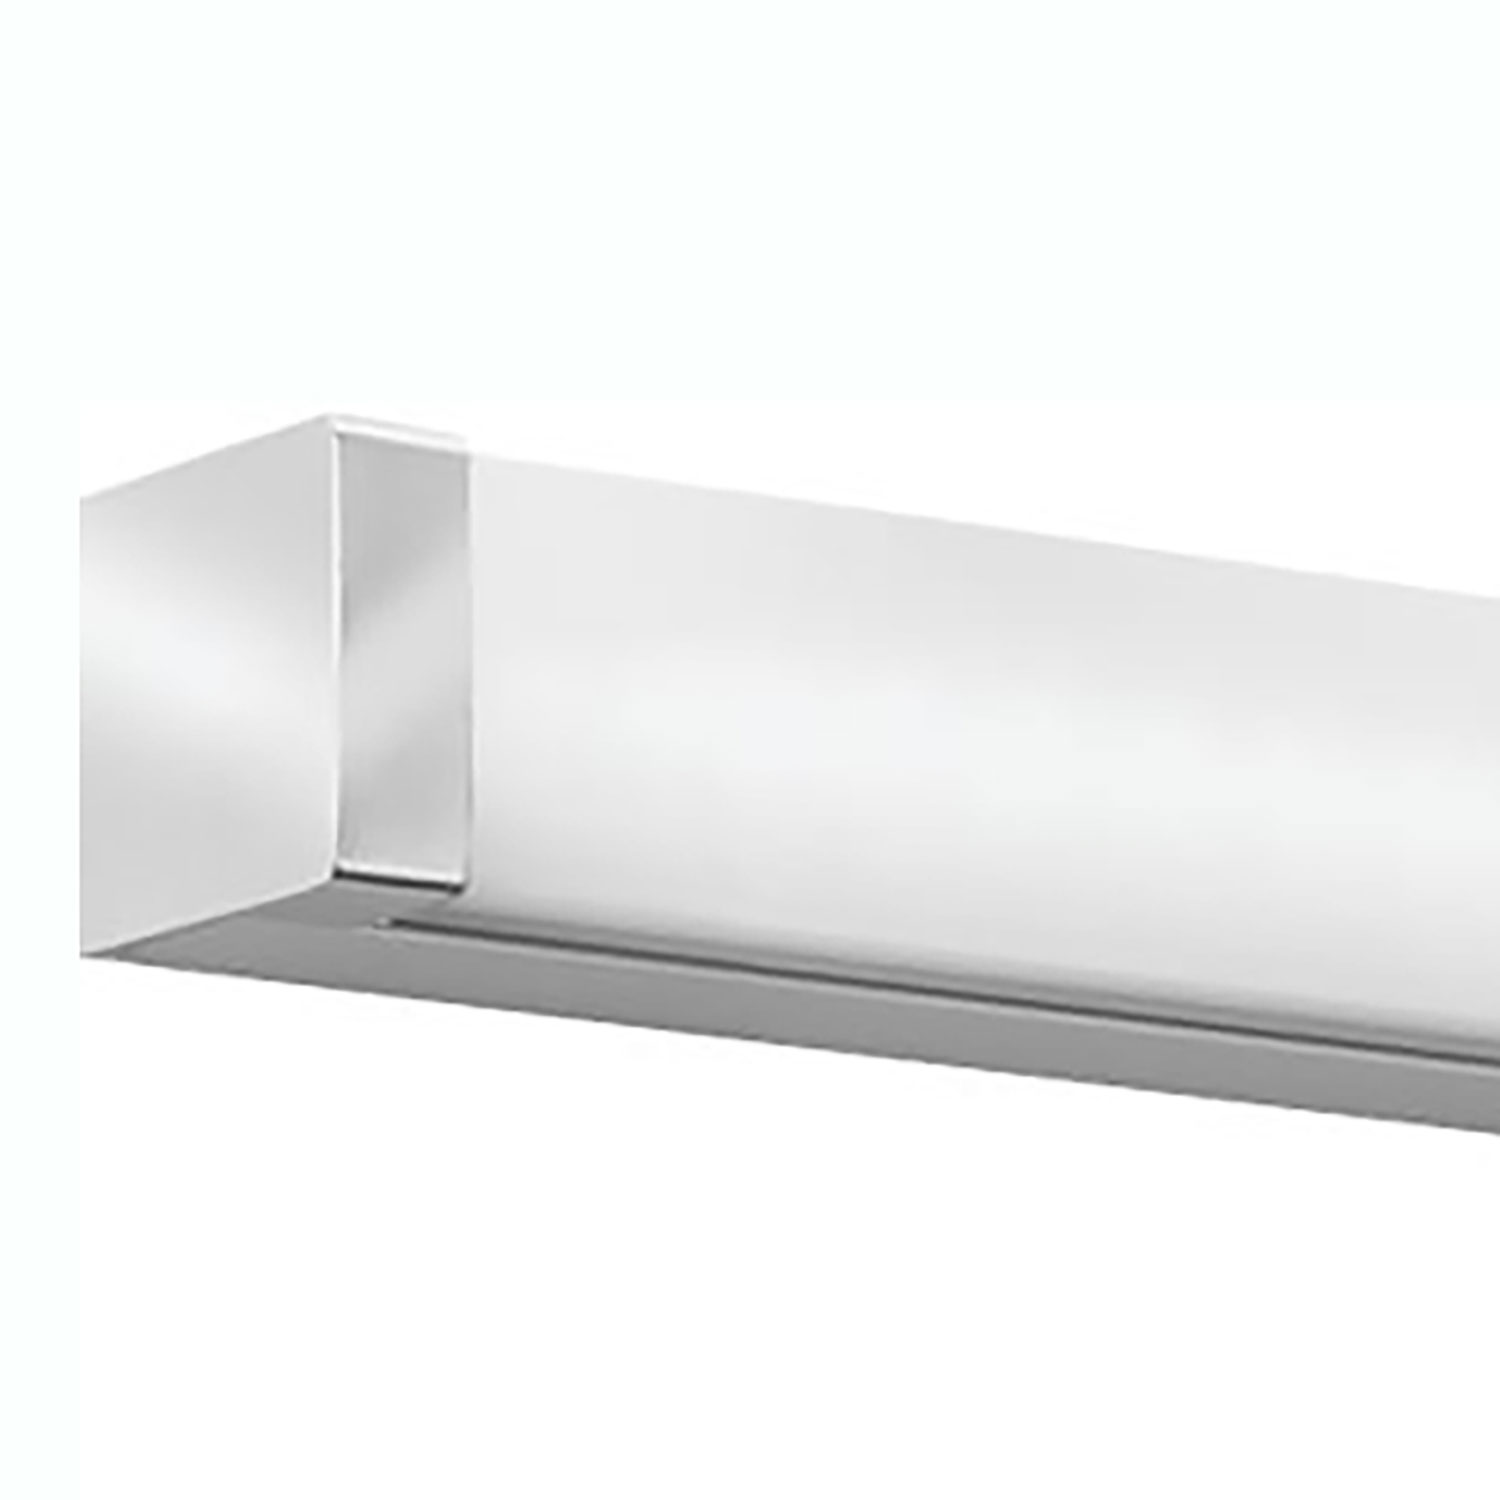 products lighting direct distributions psw architectural wall led and width mark nominal slot detail pendant light surface lithonia indirect